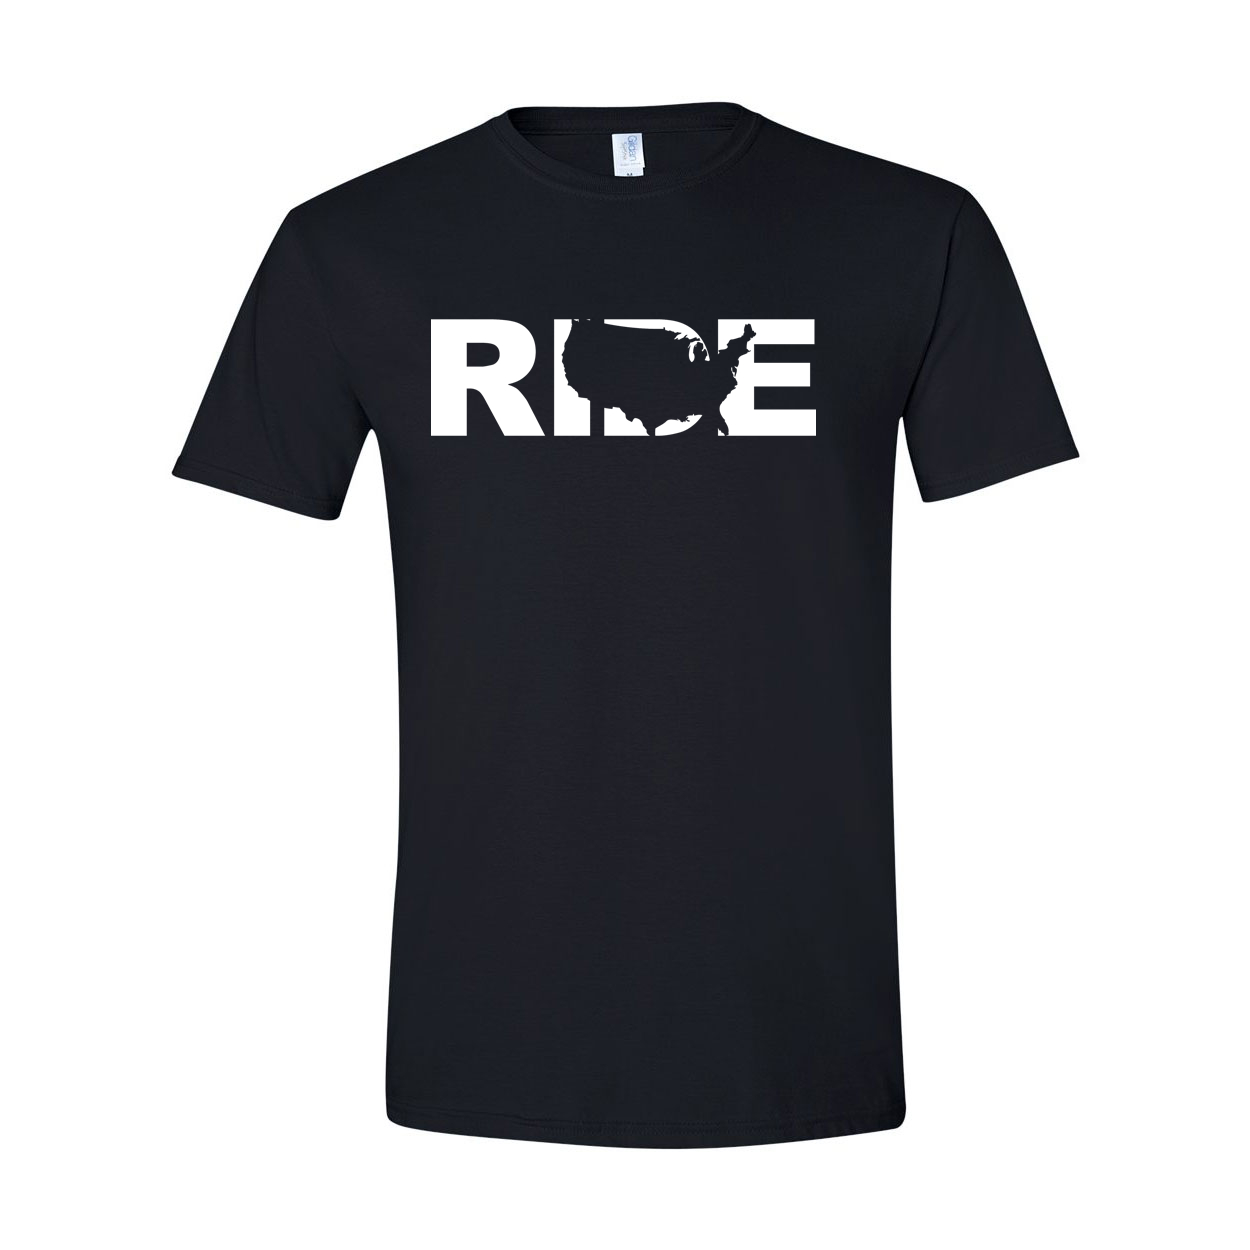 Ride United States Classic T-Shirt Black (White Logo)